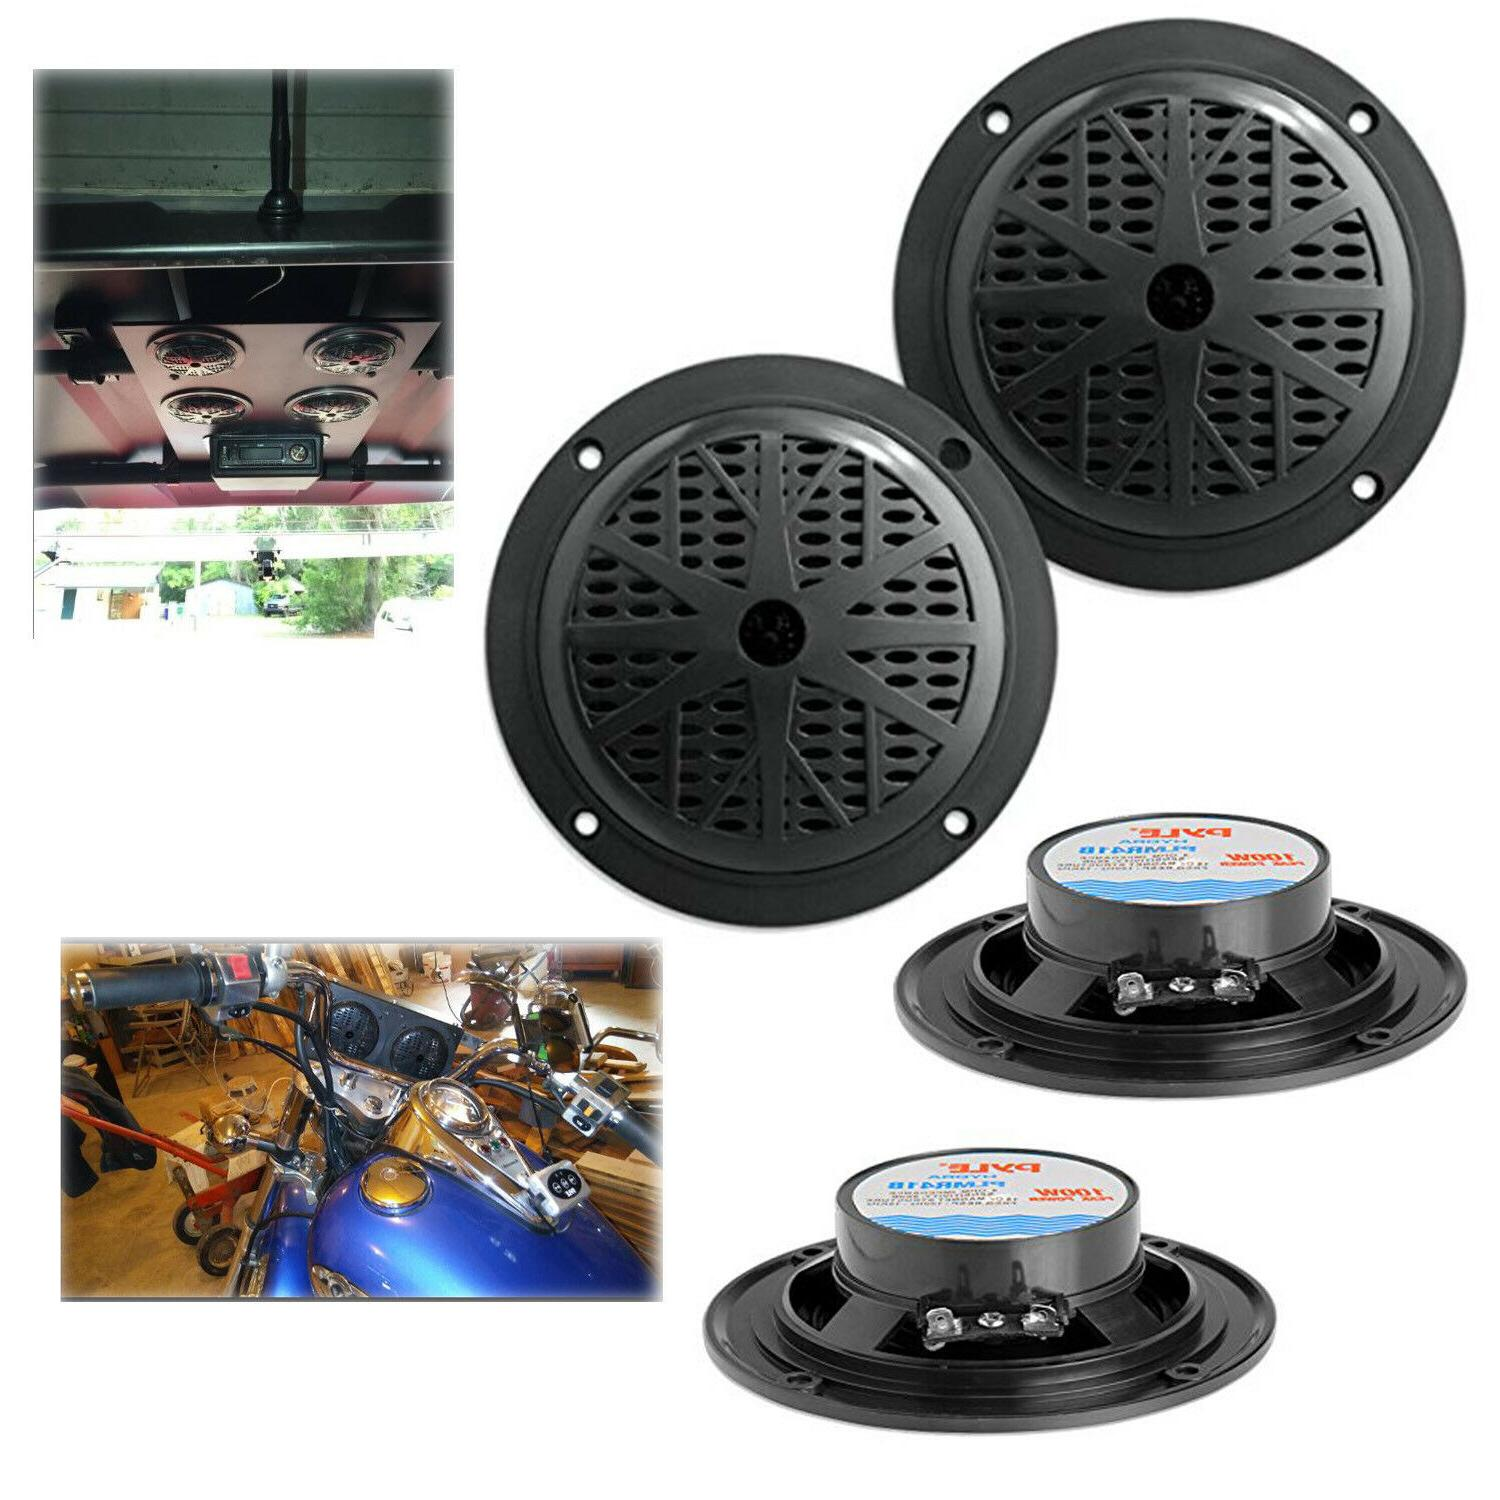 4 inch dual cone waterproof stereo speakers